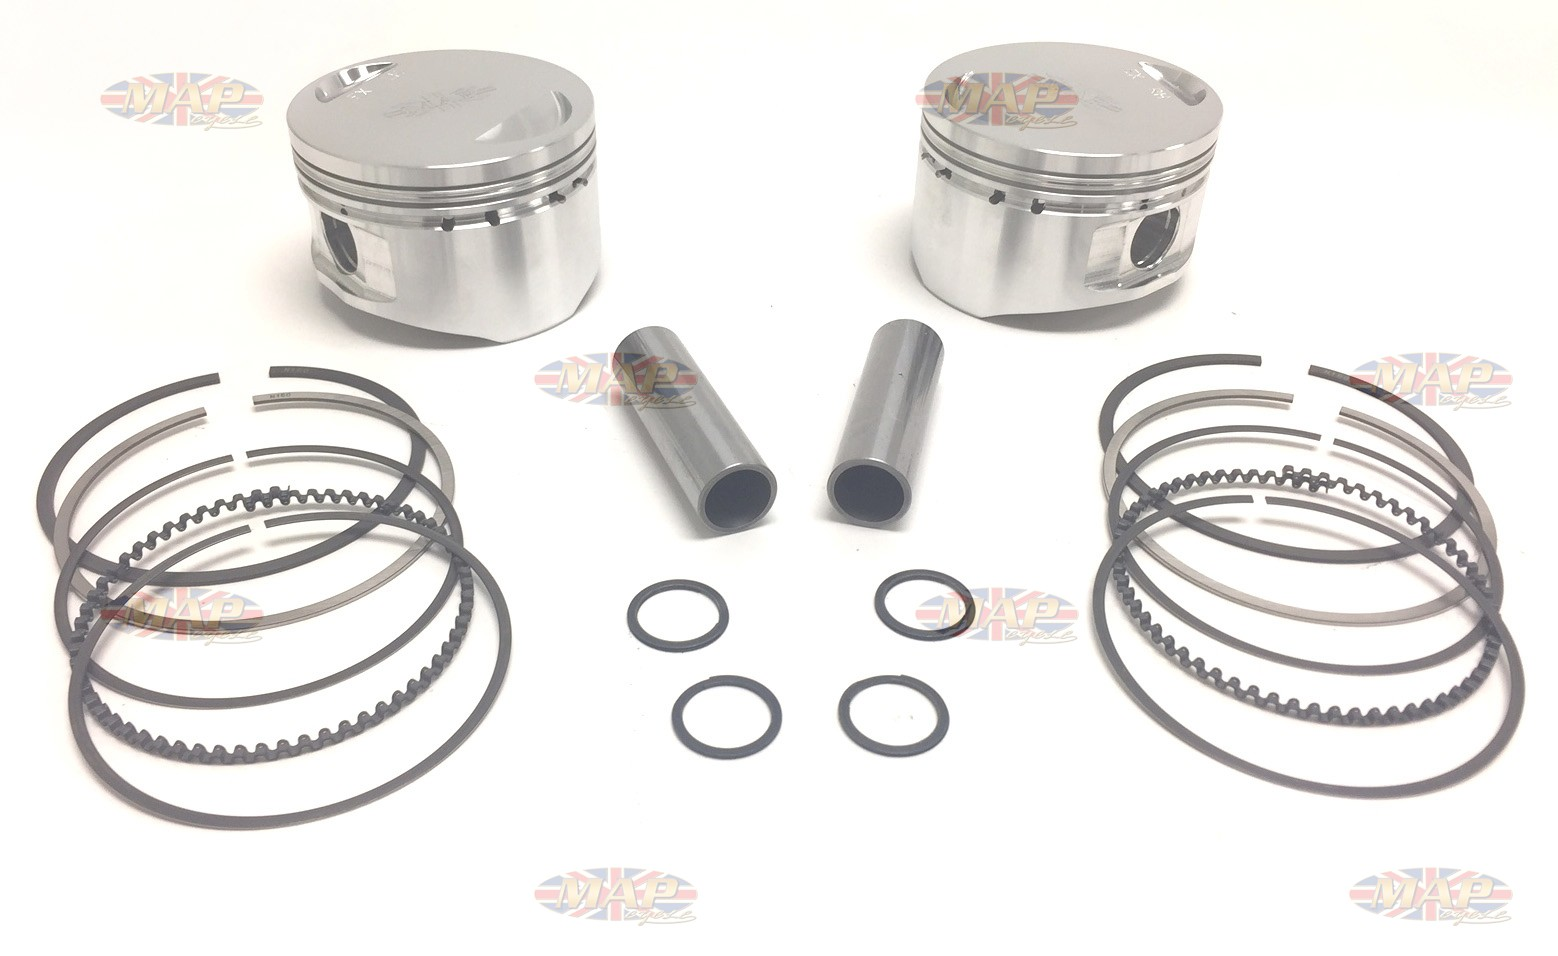 Norton Commando 750cc Long-Rod Billet Piston Set MAP9032-9033A-BILLET